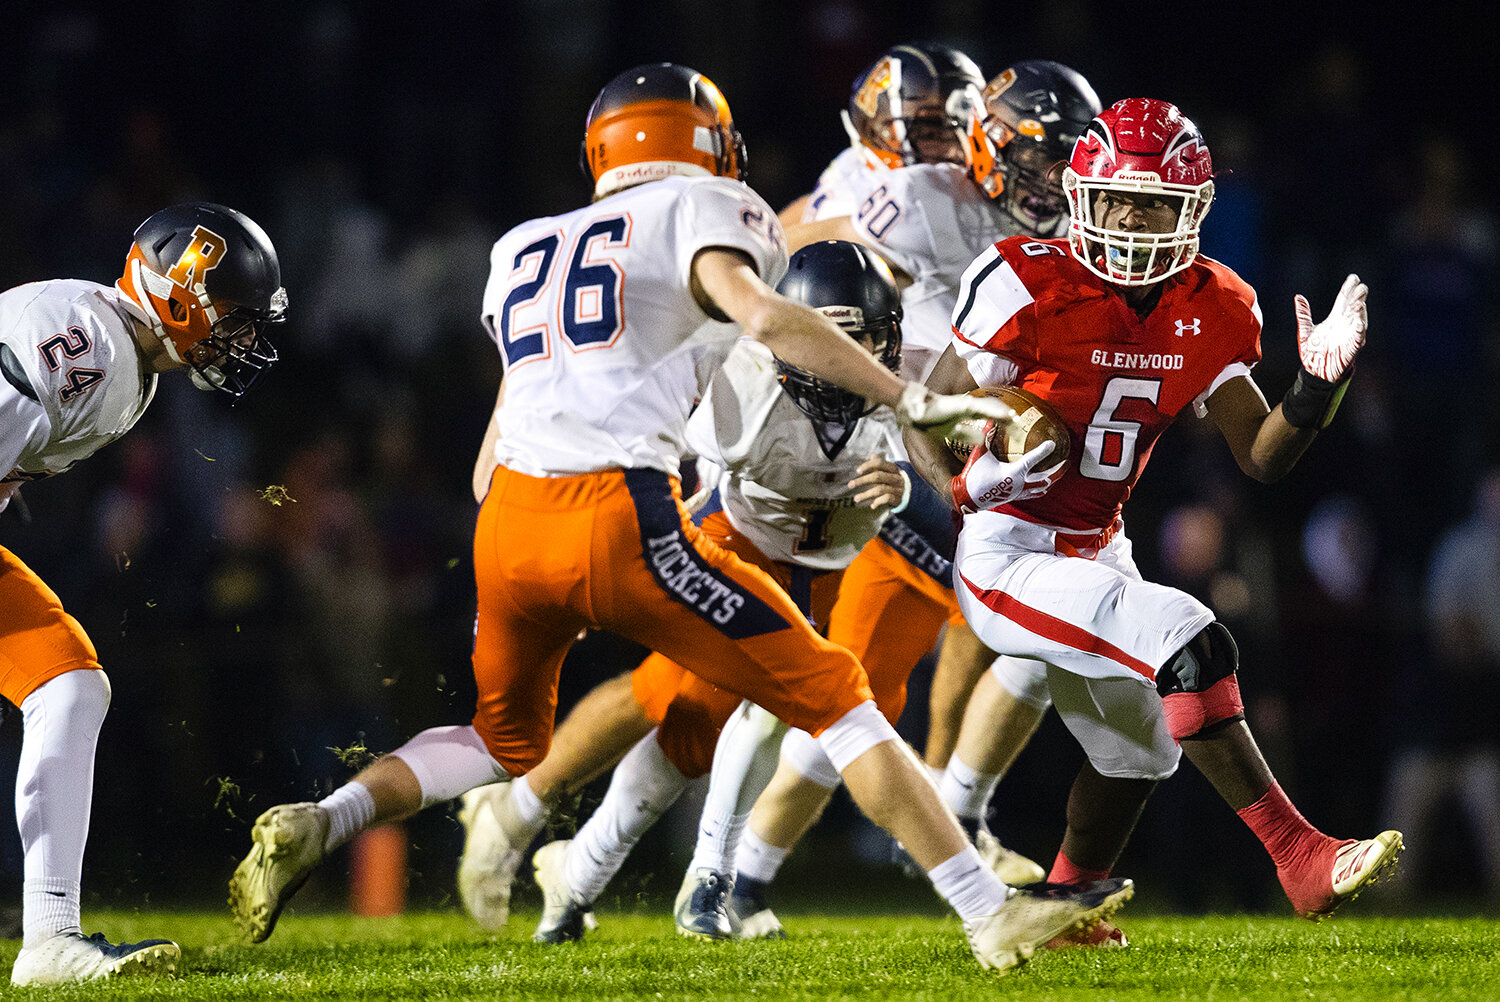 Glenwood's Narkel LeFlore (6) sprints ahead of a pack of Rochester defenders at Glenwood High School Friday, Oct. 25, 2019. [Ted Schurter/The State Journal-Register]